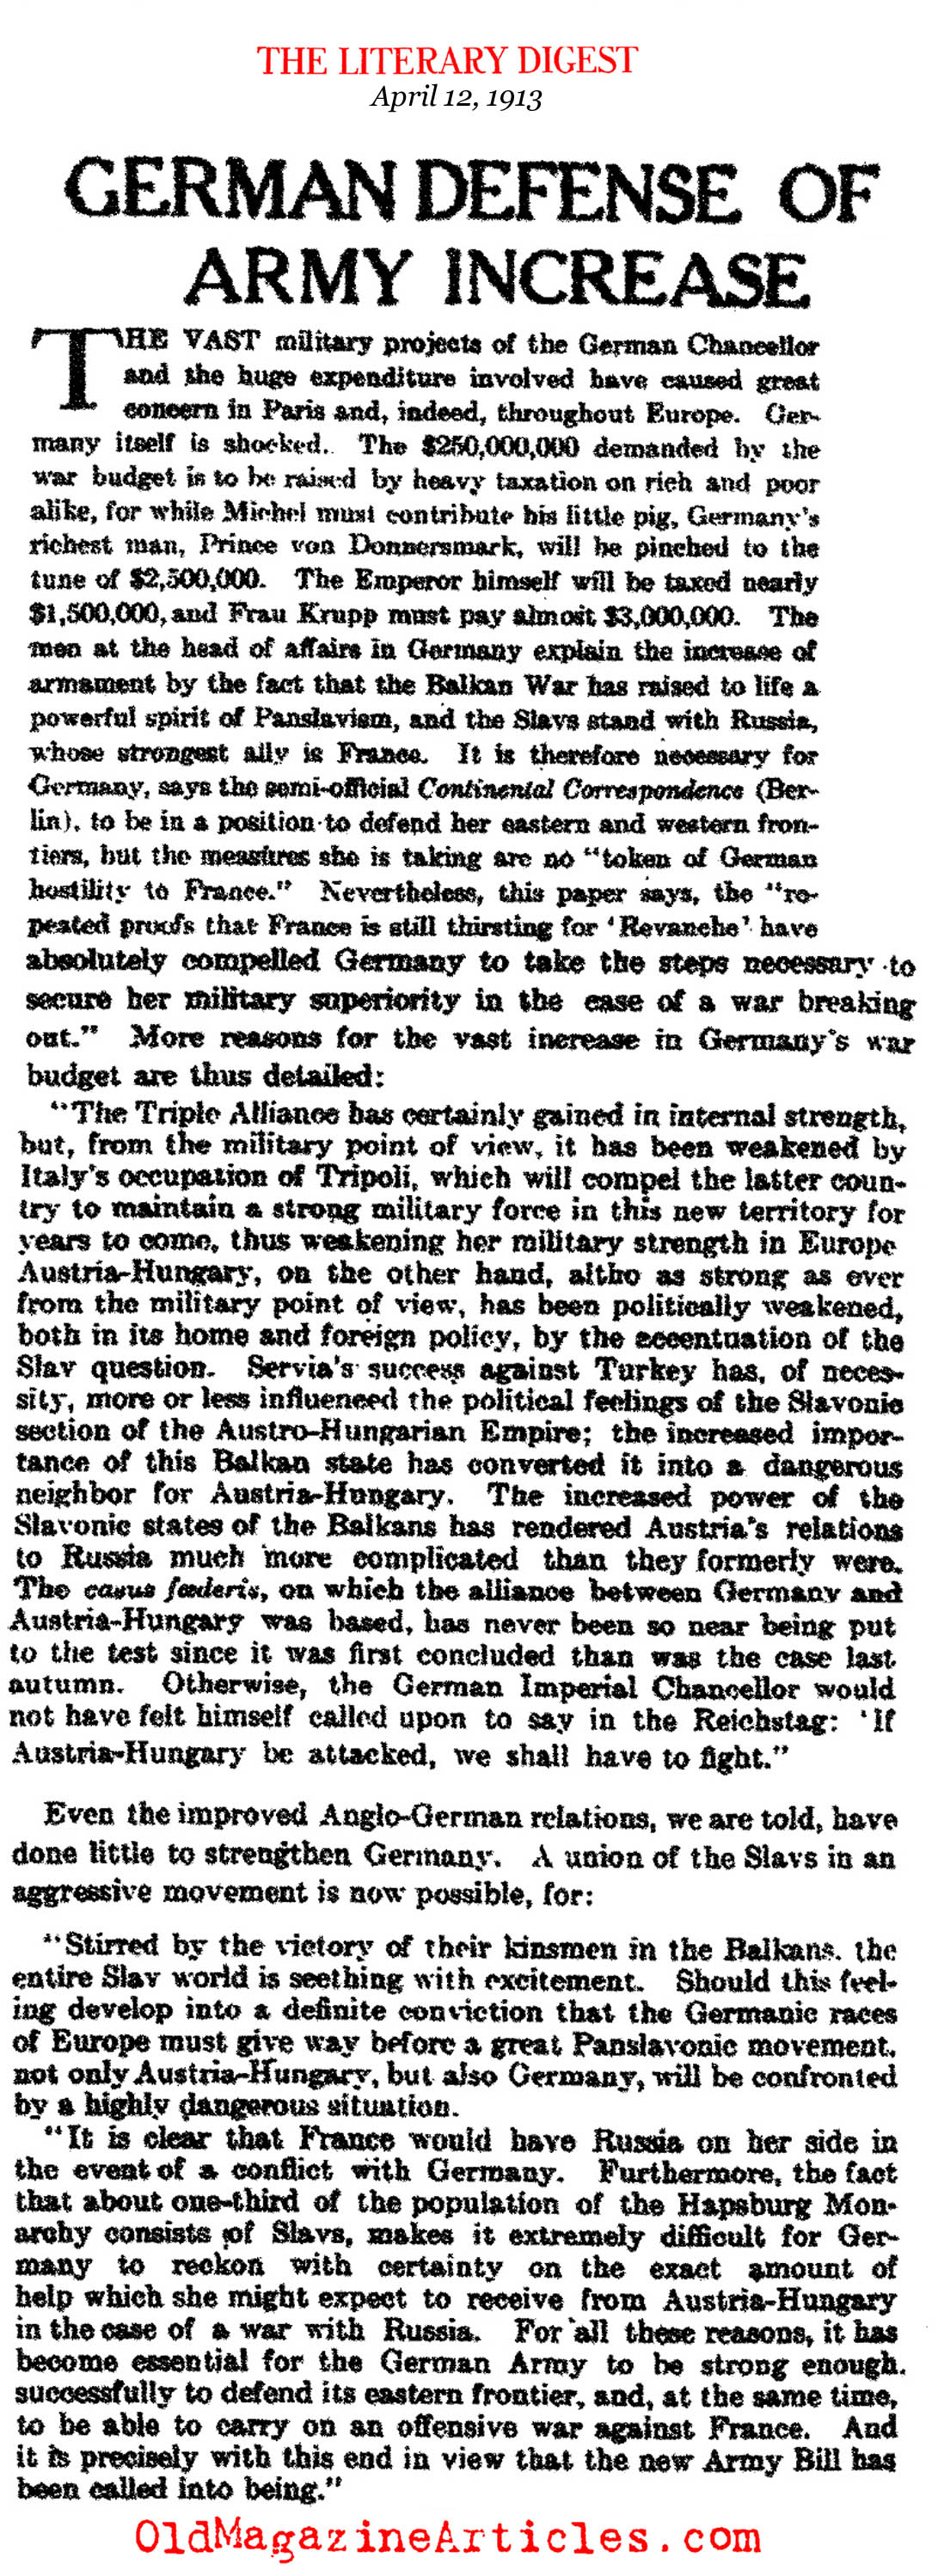 Germany Defends It's Military Build Up  (Literary Digest, 1913)